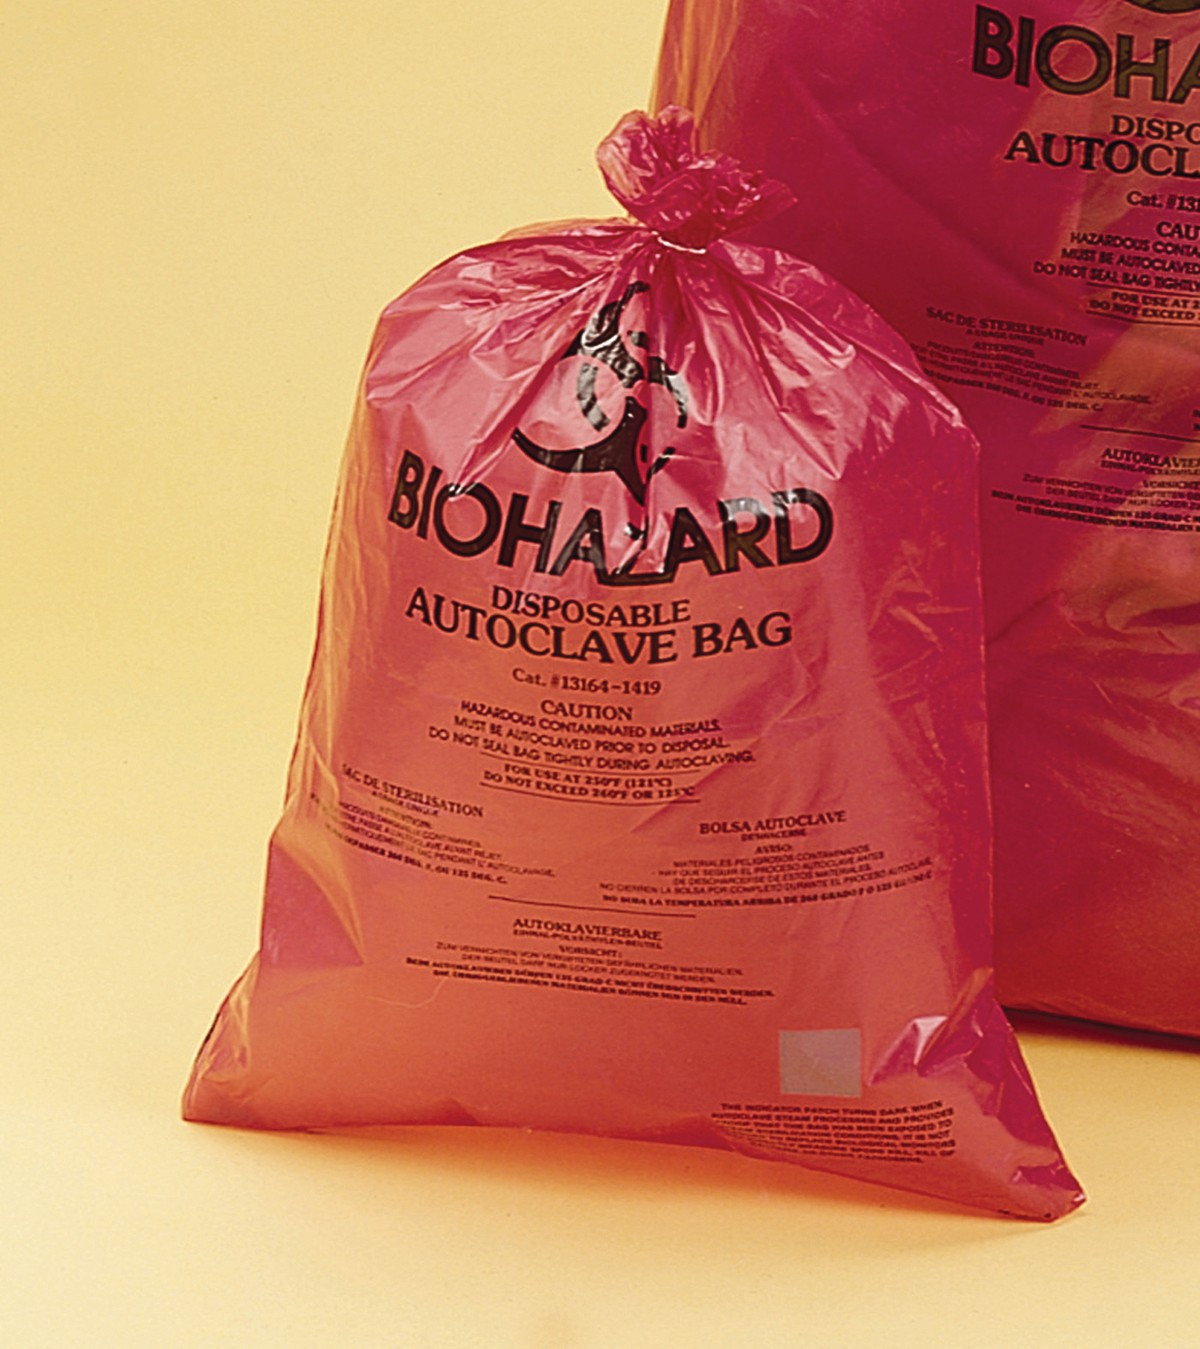 Biohazard disposal bags 64 x 89cm - Super Strength (Pack of 200 pcs)